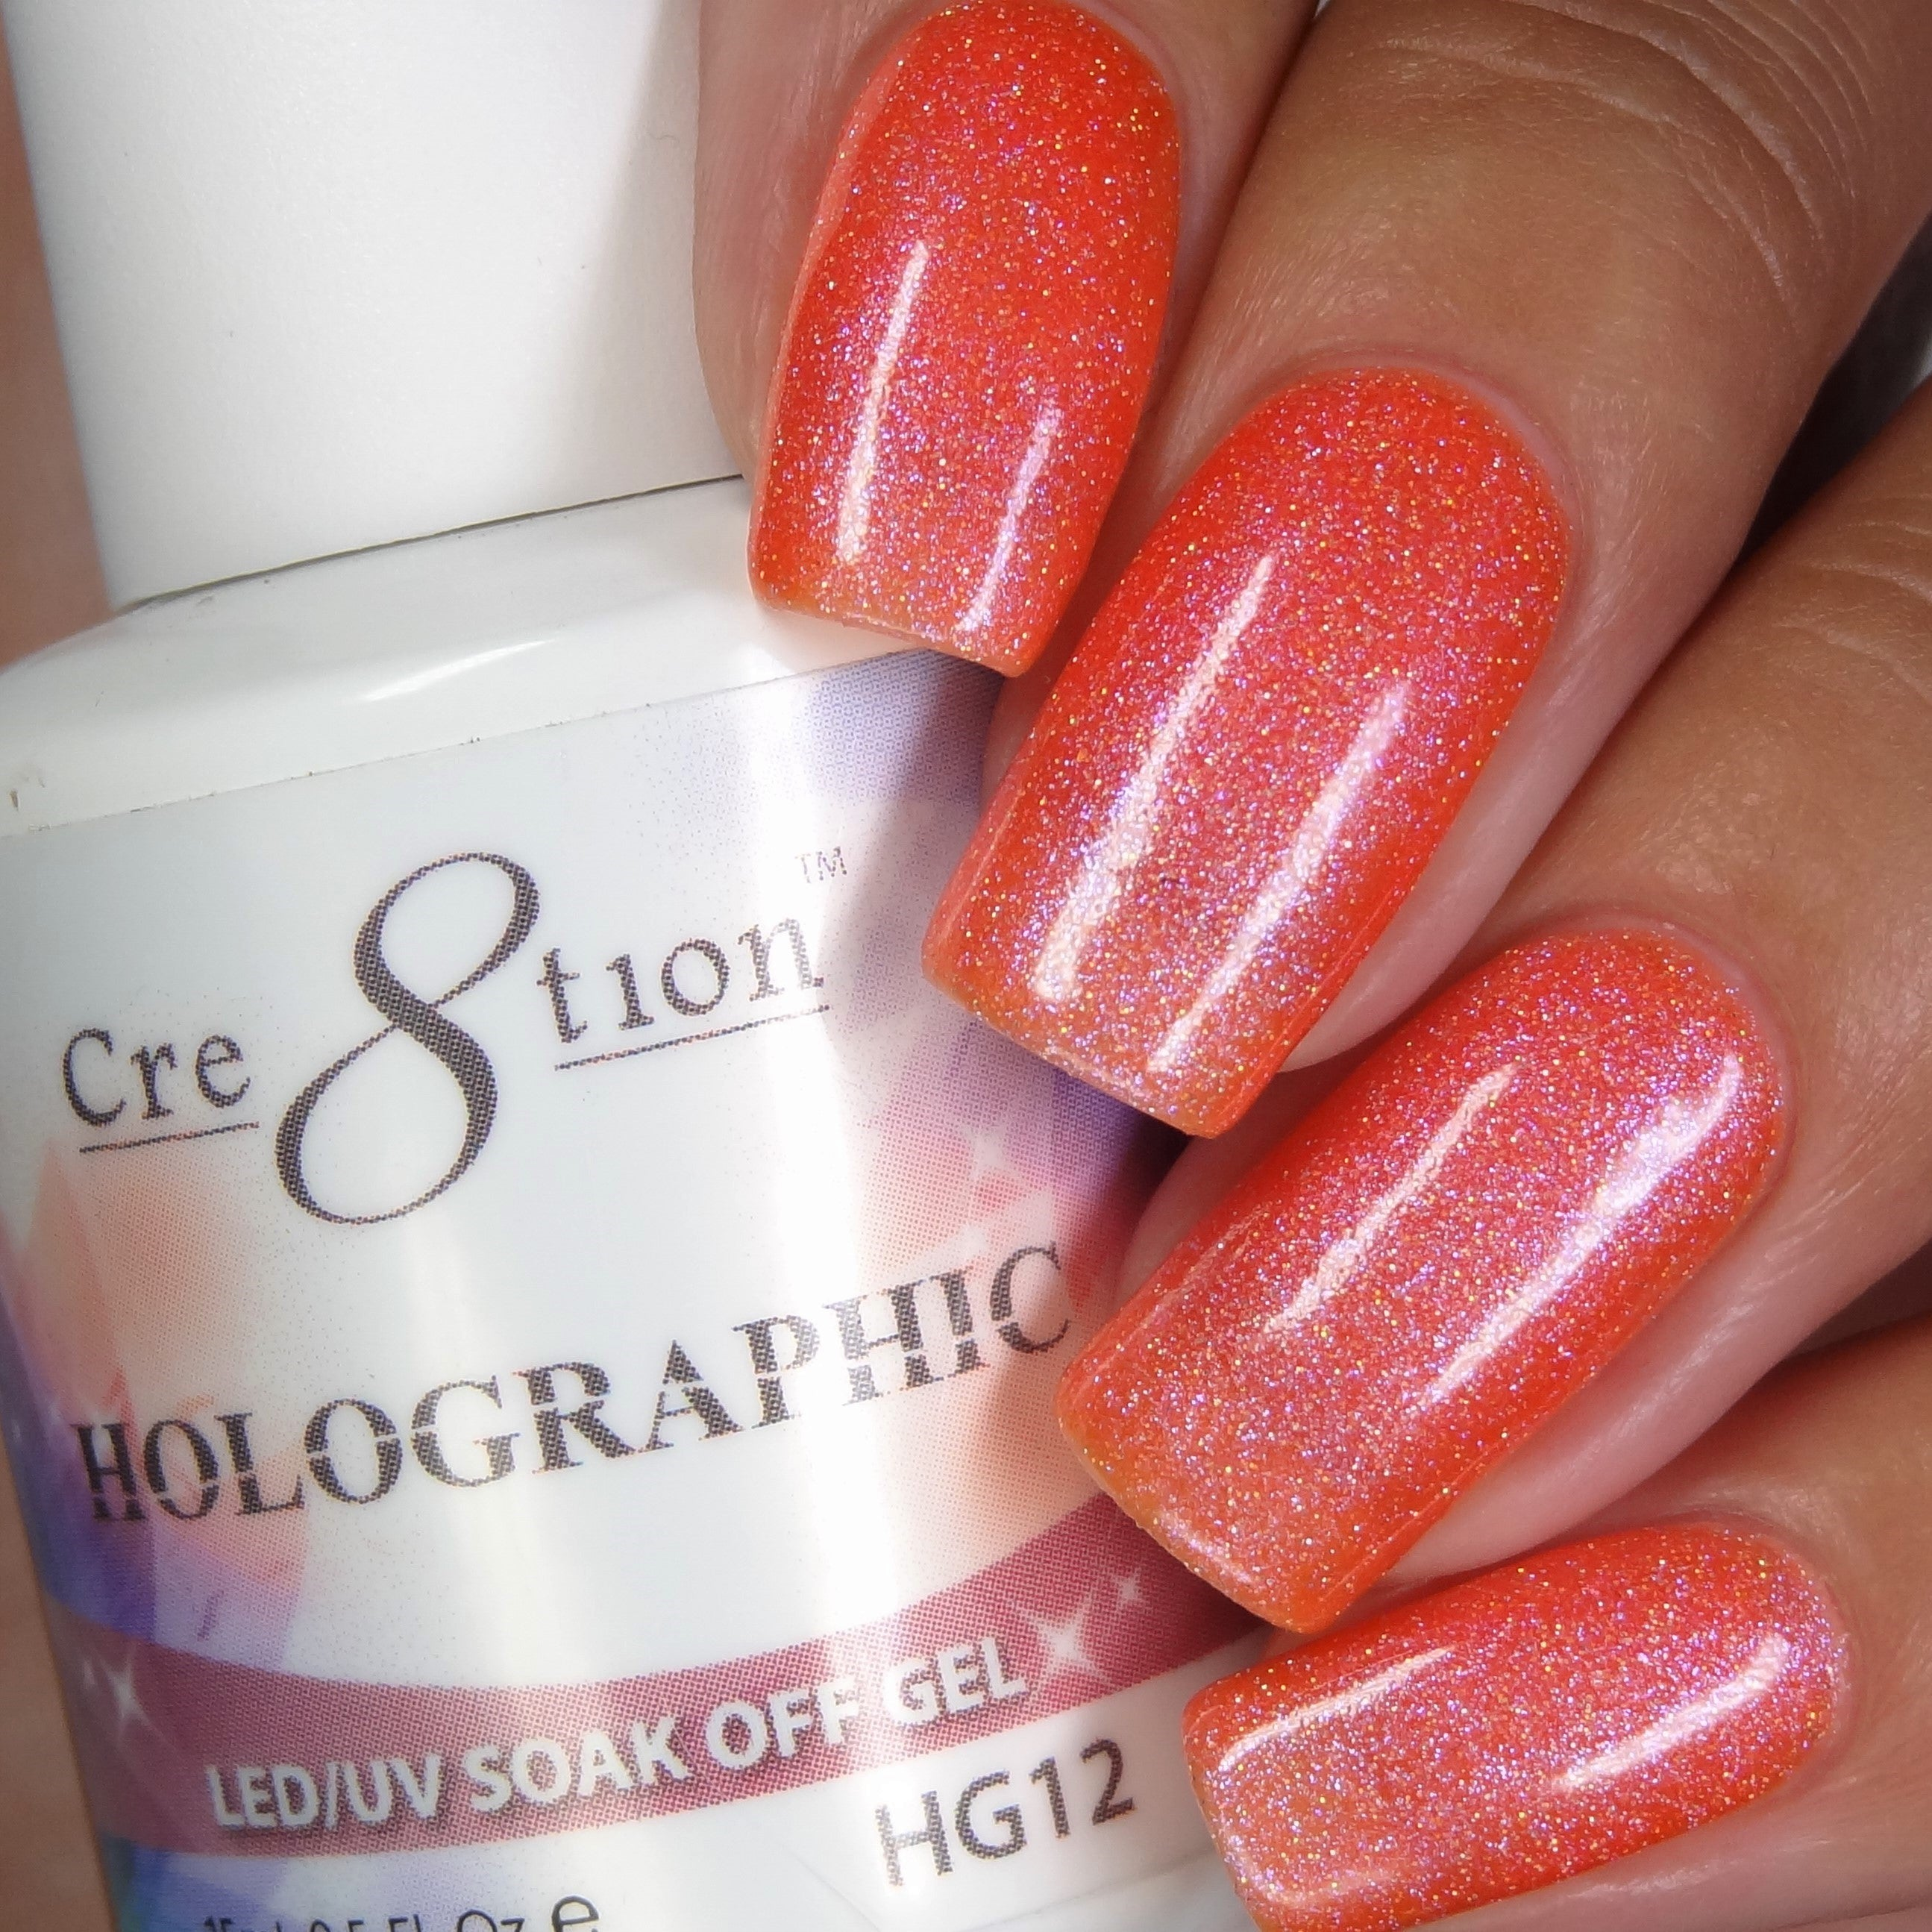 Cre8tion - Holographic Soak Off Gel .5oz HG12